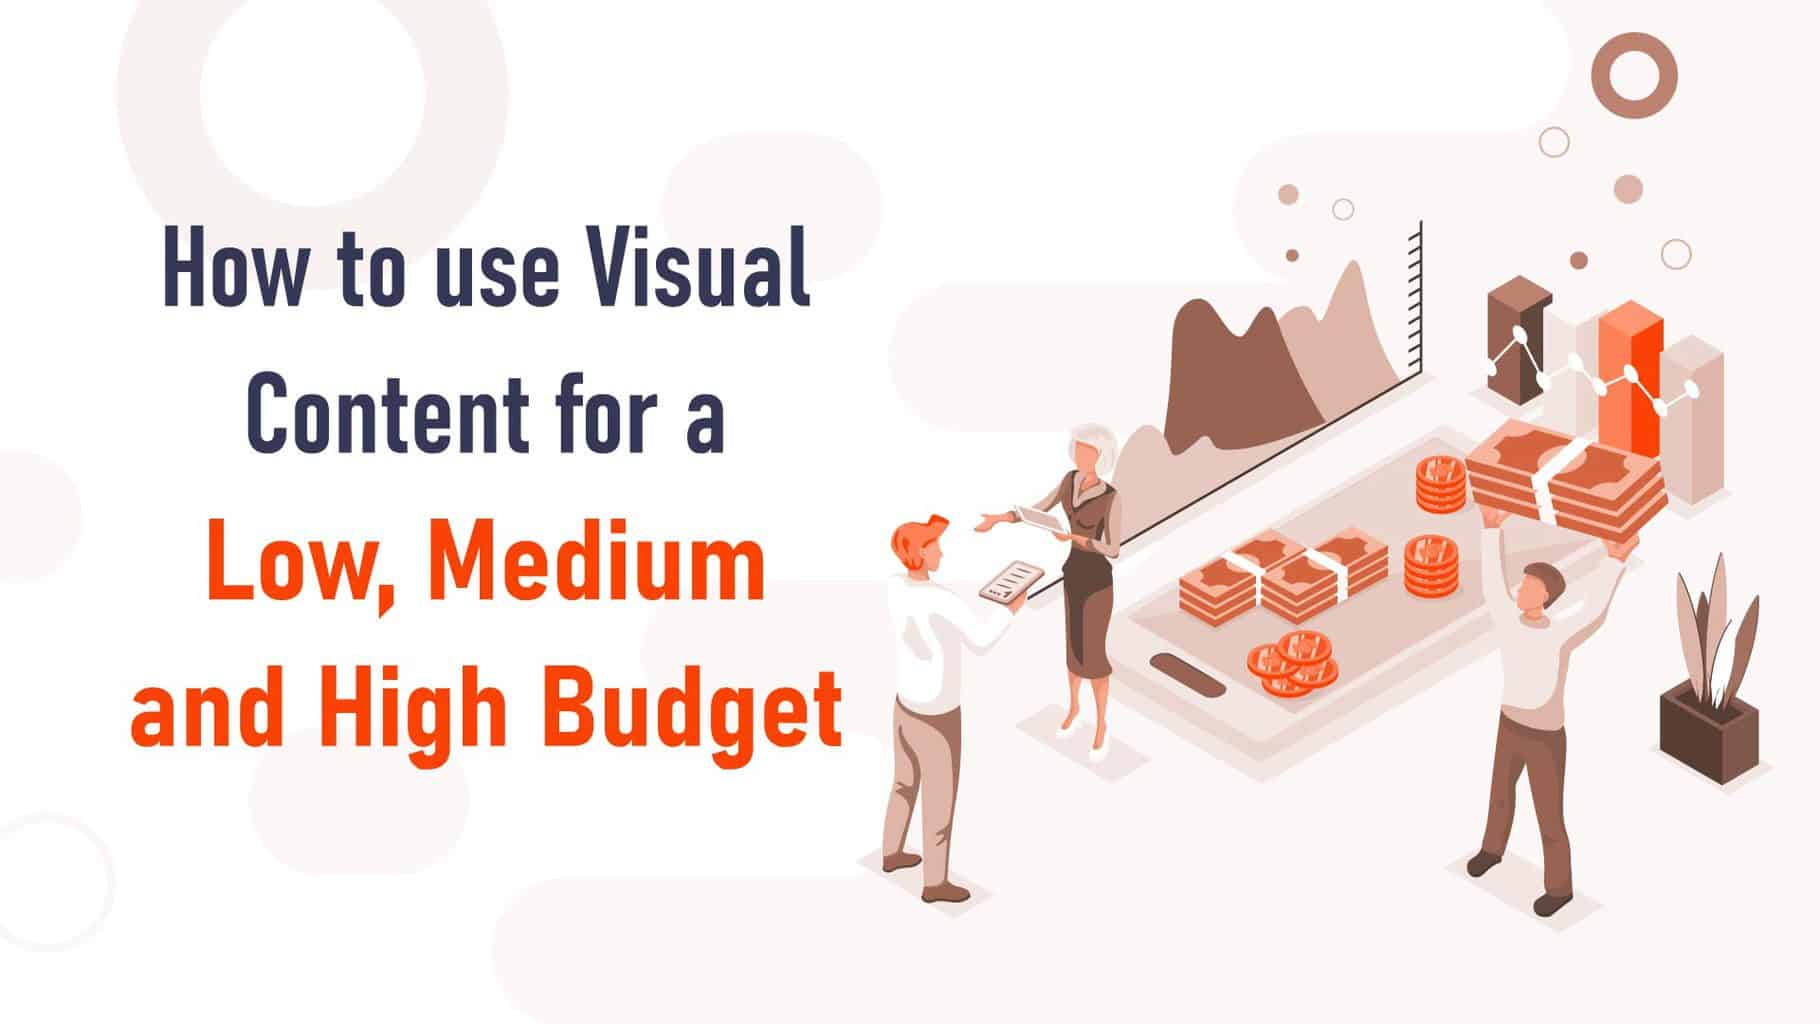 How to Use Visual Content in Your Marketing for a Low, Medium and High Budget